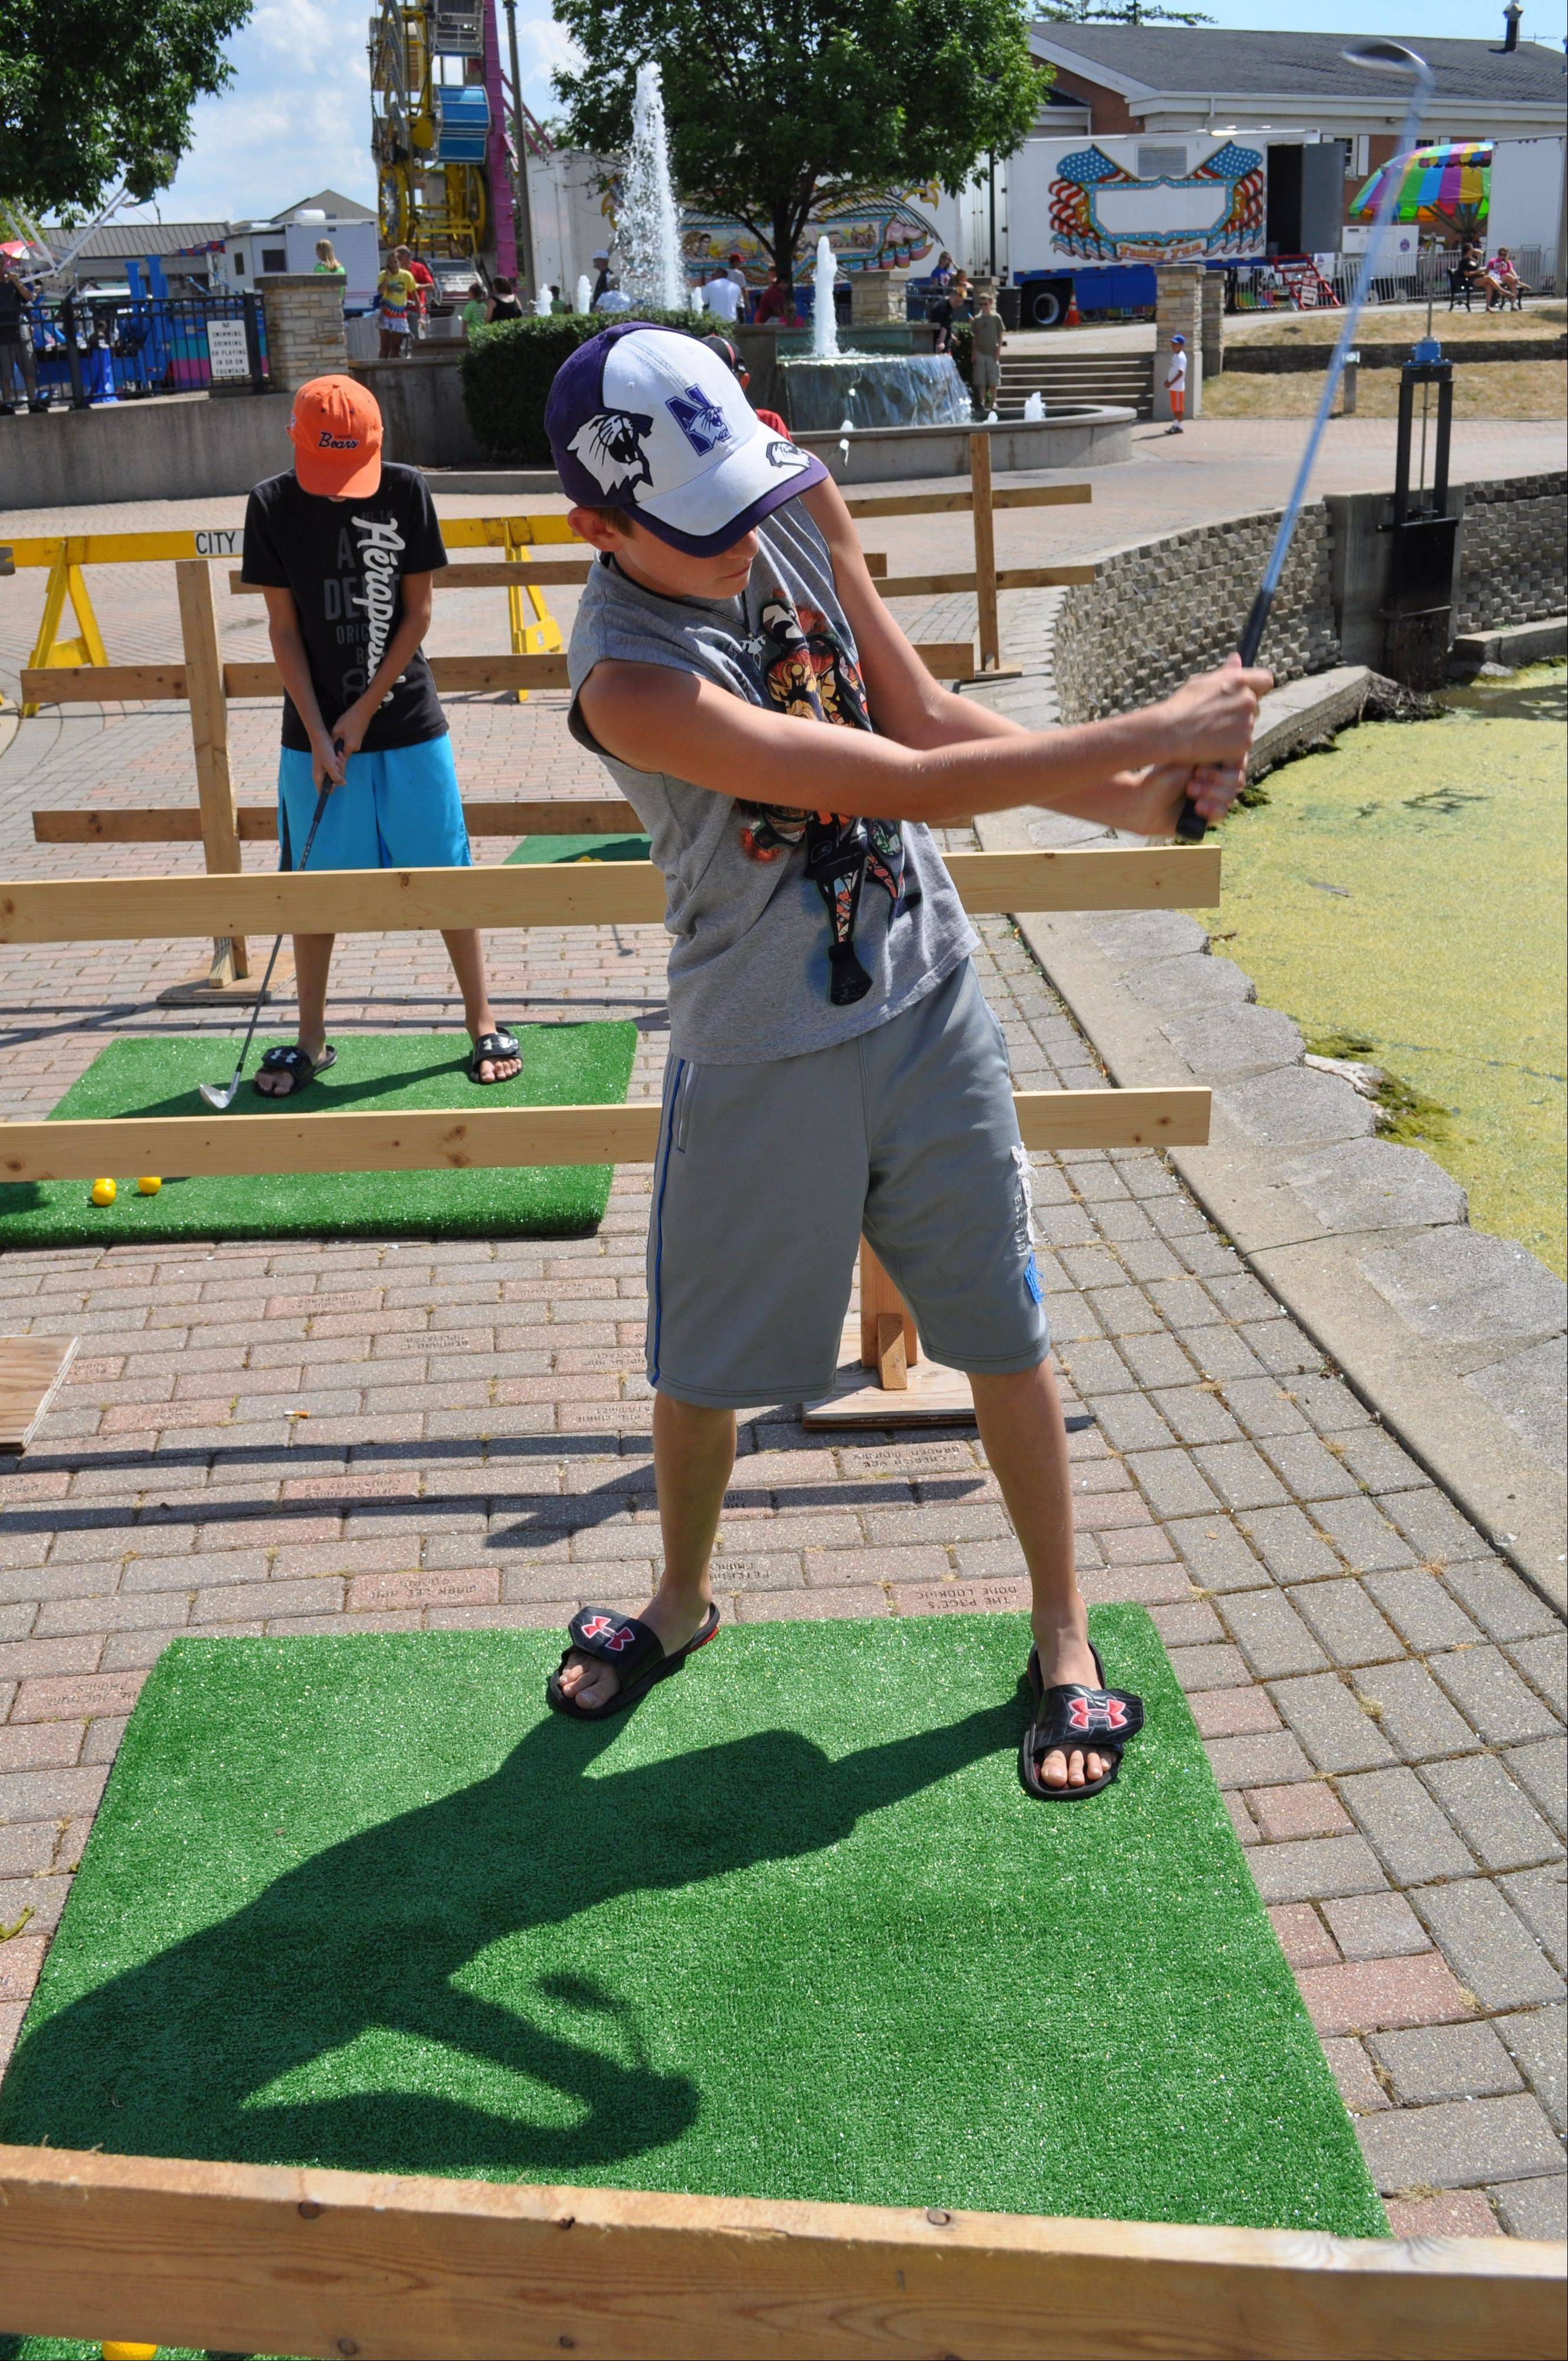 The Golf Challenge offers festival-goers the opportunity to take a whack at golfing. Ages 10 and older are welcome to participate. The challenge runs 2 p.m. to 6 p.m. Saturday at the Depot Pond.